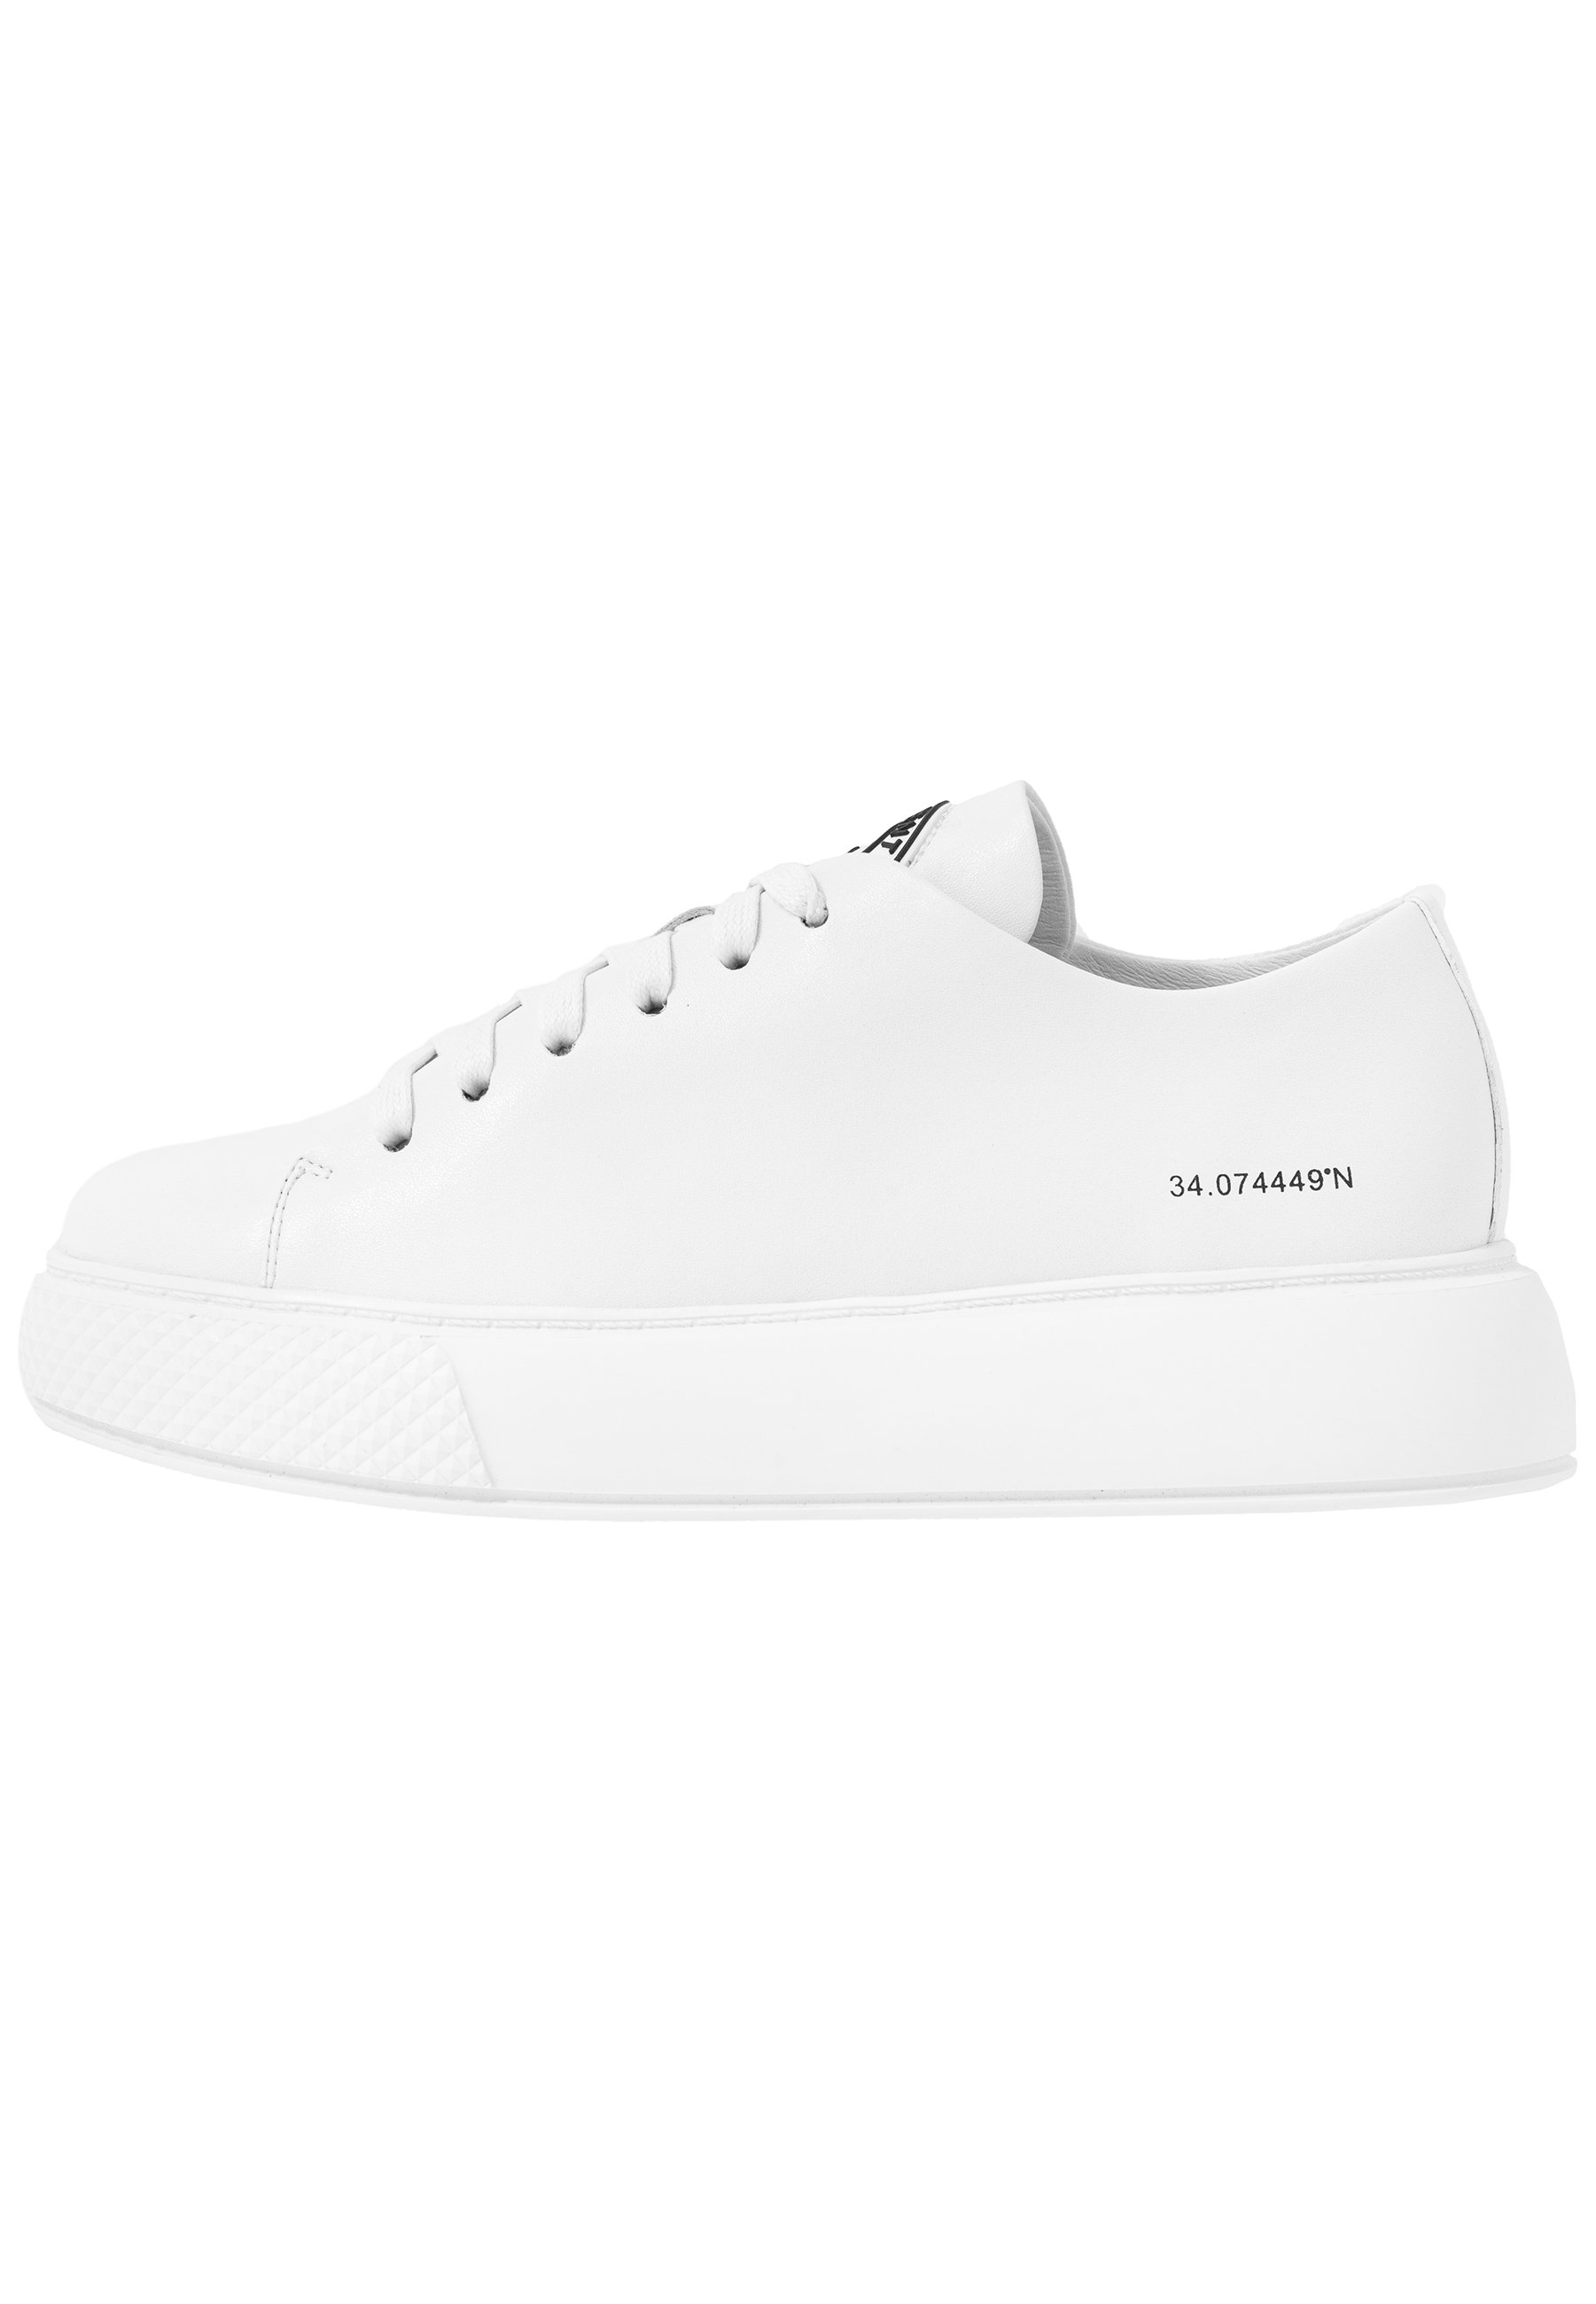 ENTOURAGE PAVEMENT X JEFFREY CAMPBELL Sneakers white